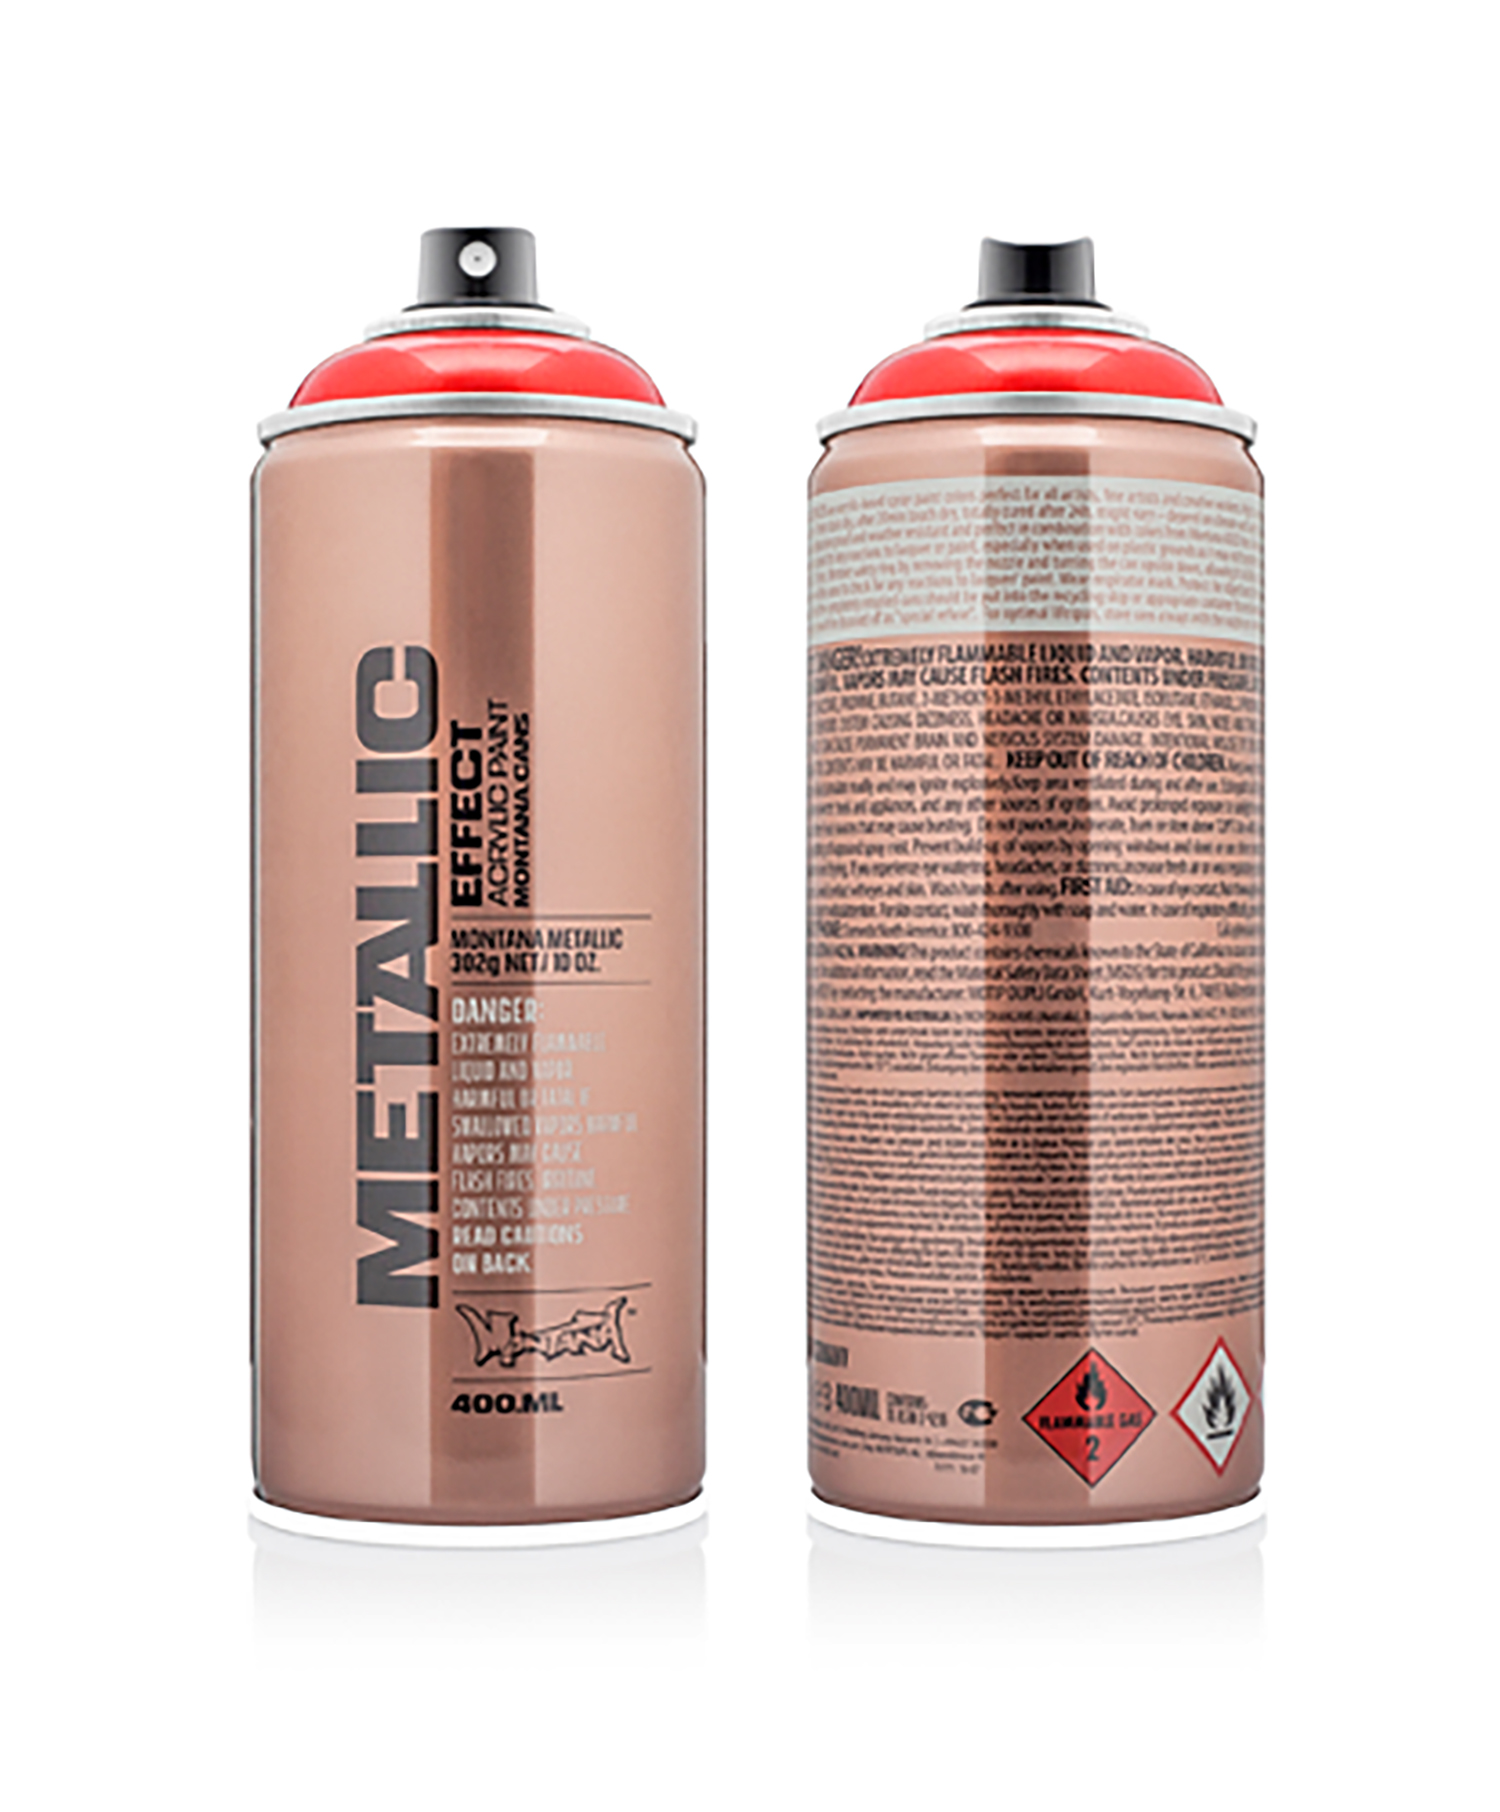 MONTANA-EFFECT-METALLIC-SPRAY-400ML_EMC3020